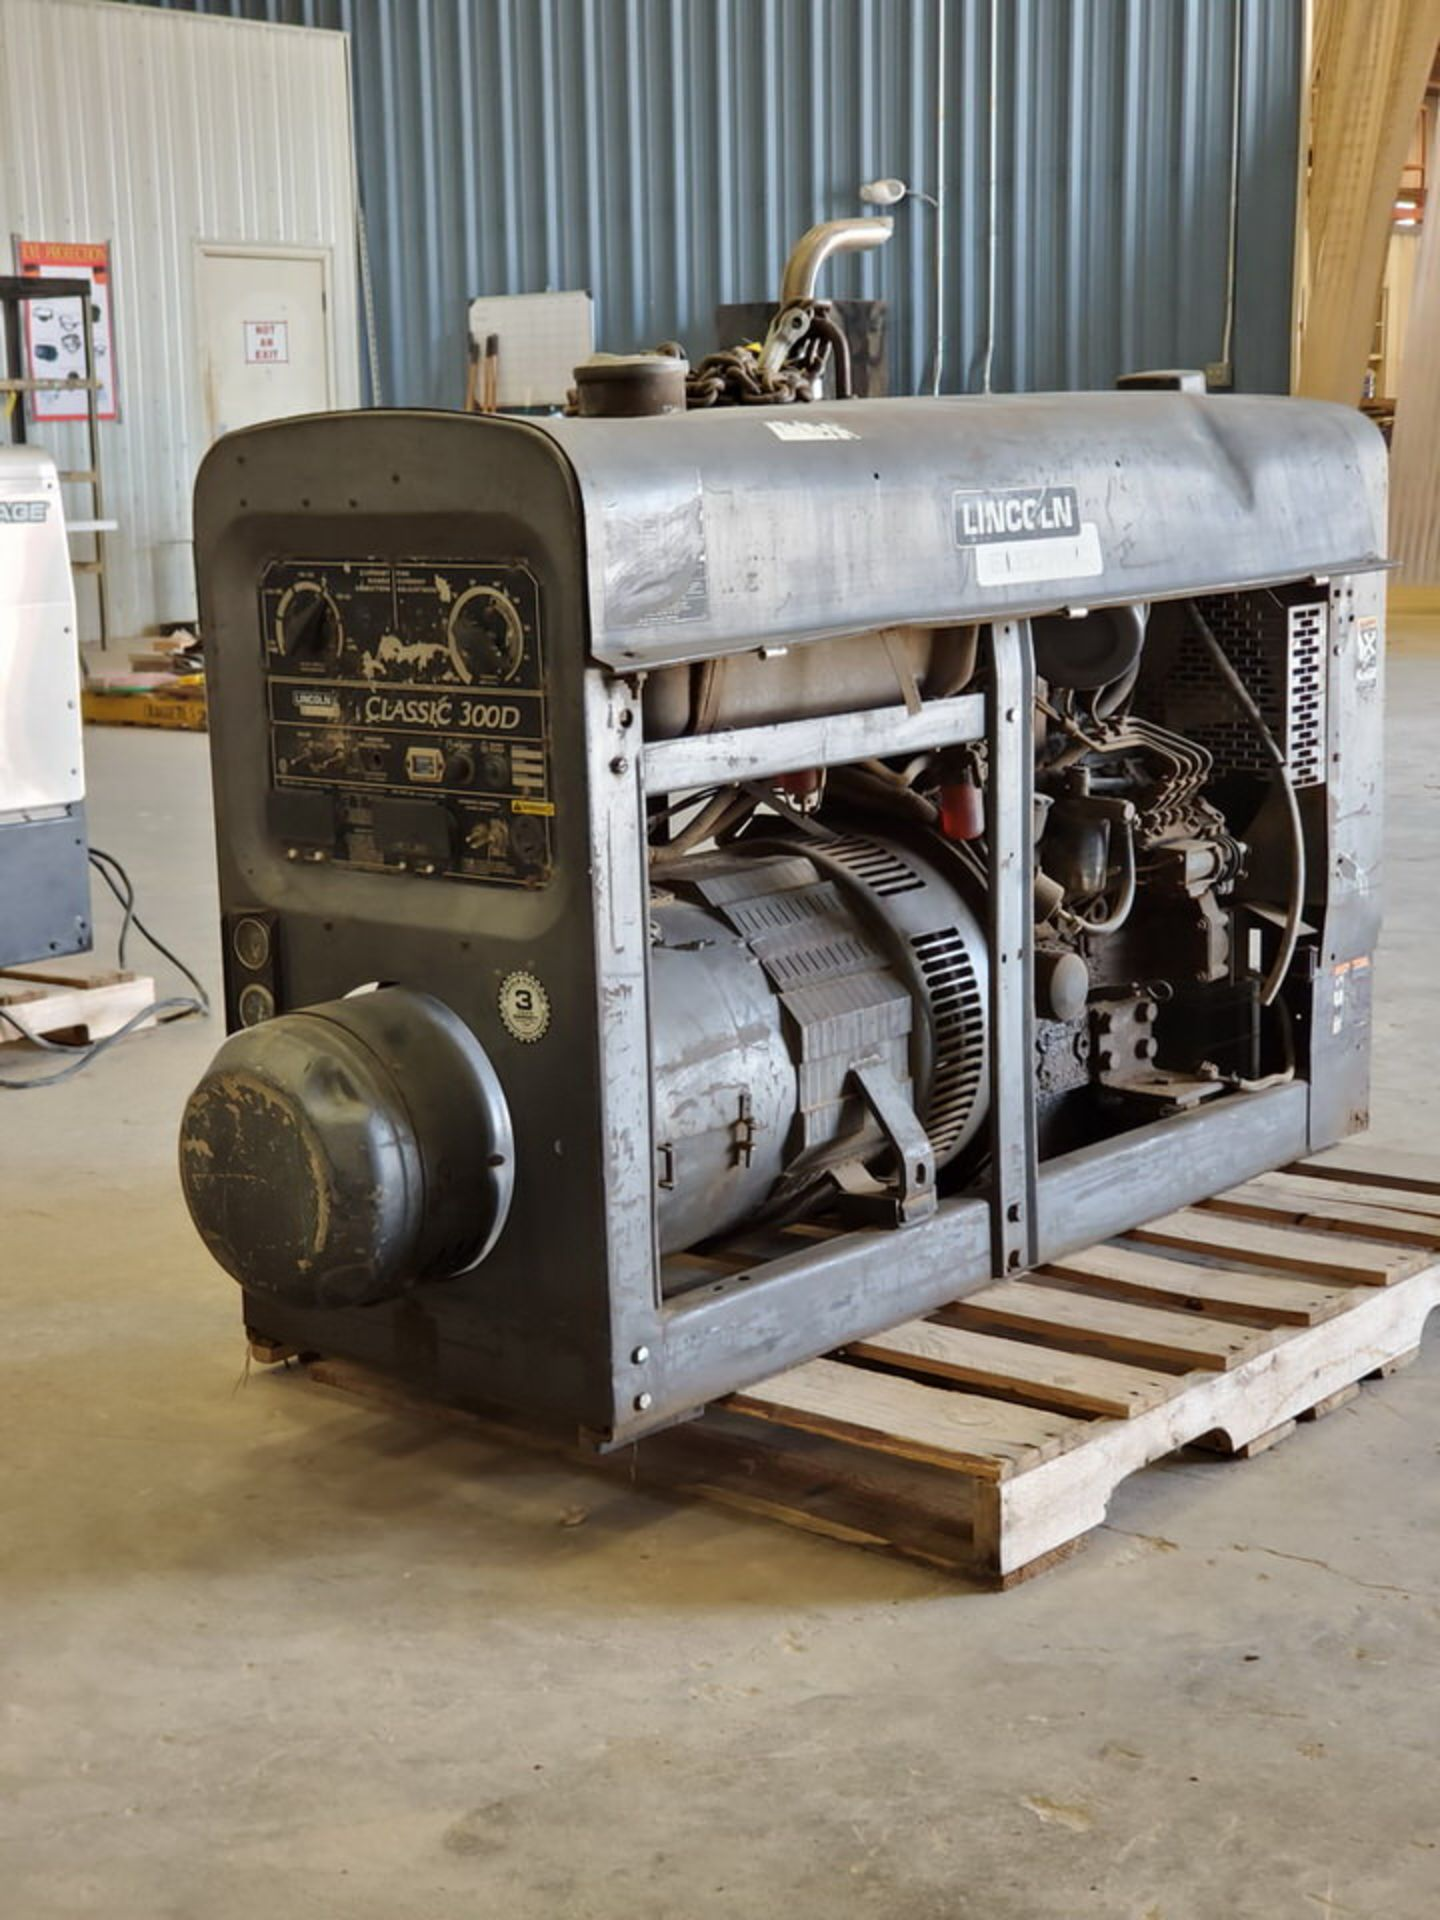 LE Classic 300D Multiprocessing Welder 115/230V, 26/13A; 4 Cyl Kubota Engine, 800RPM - Image 3 of 9